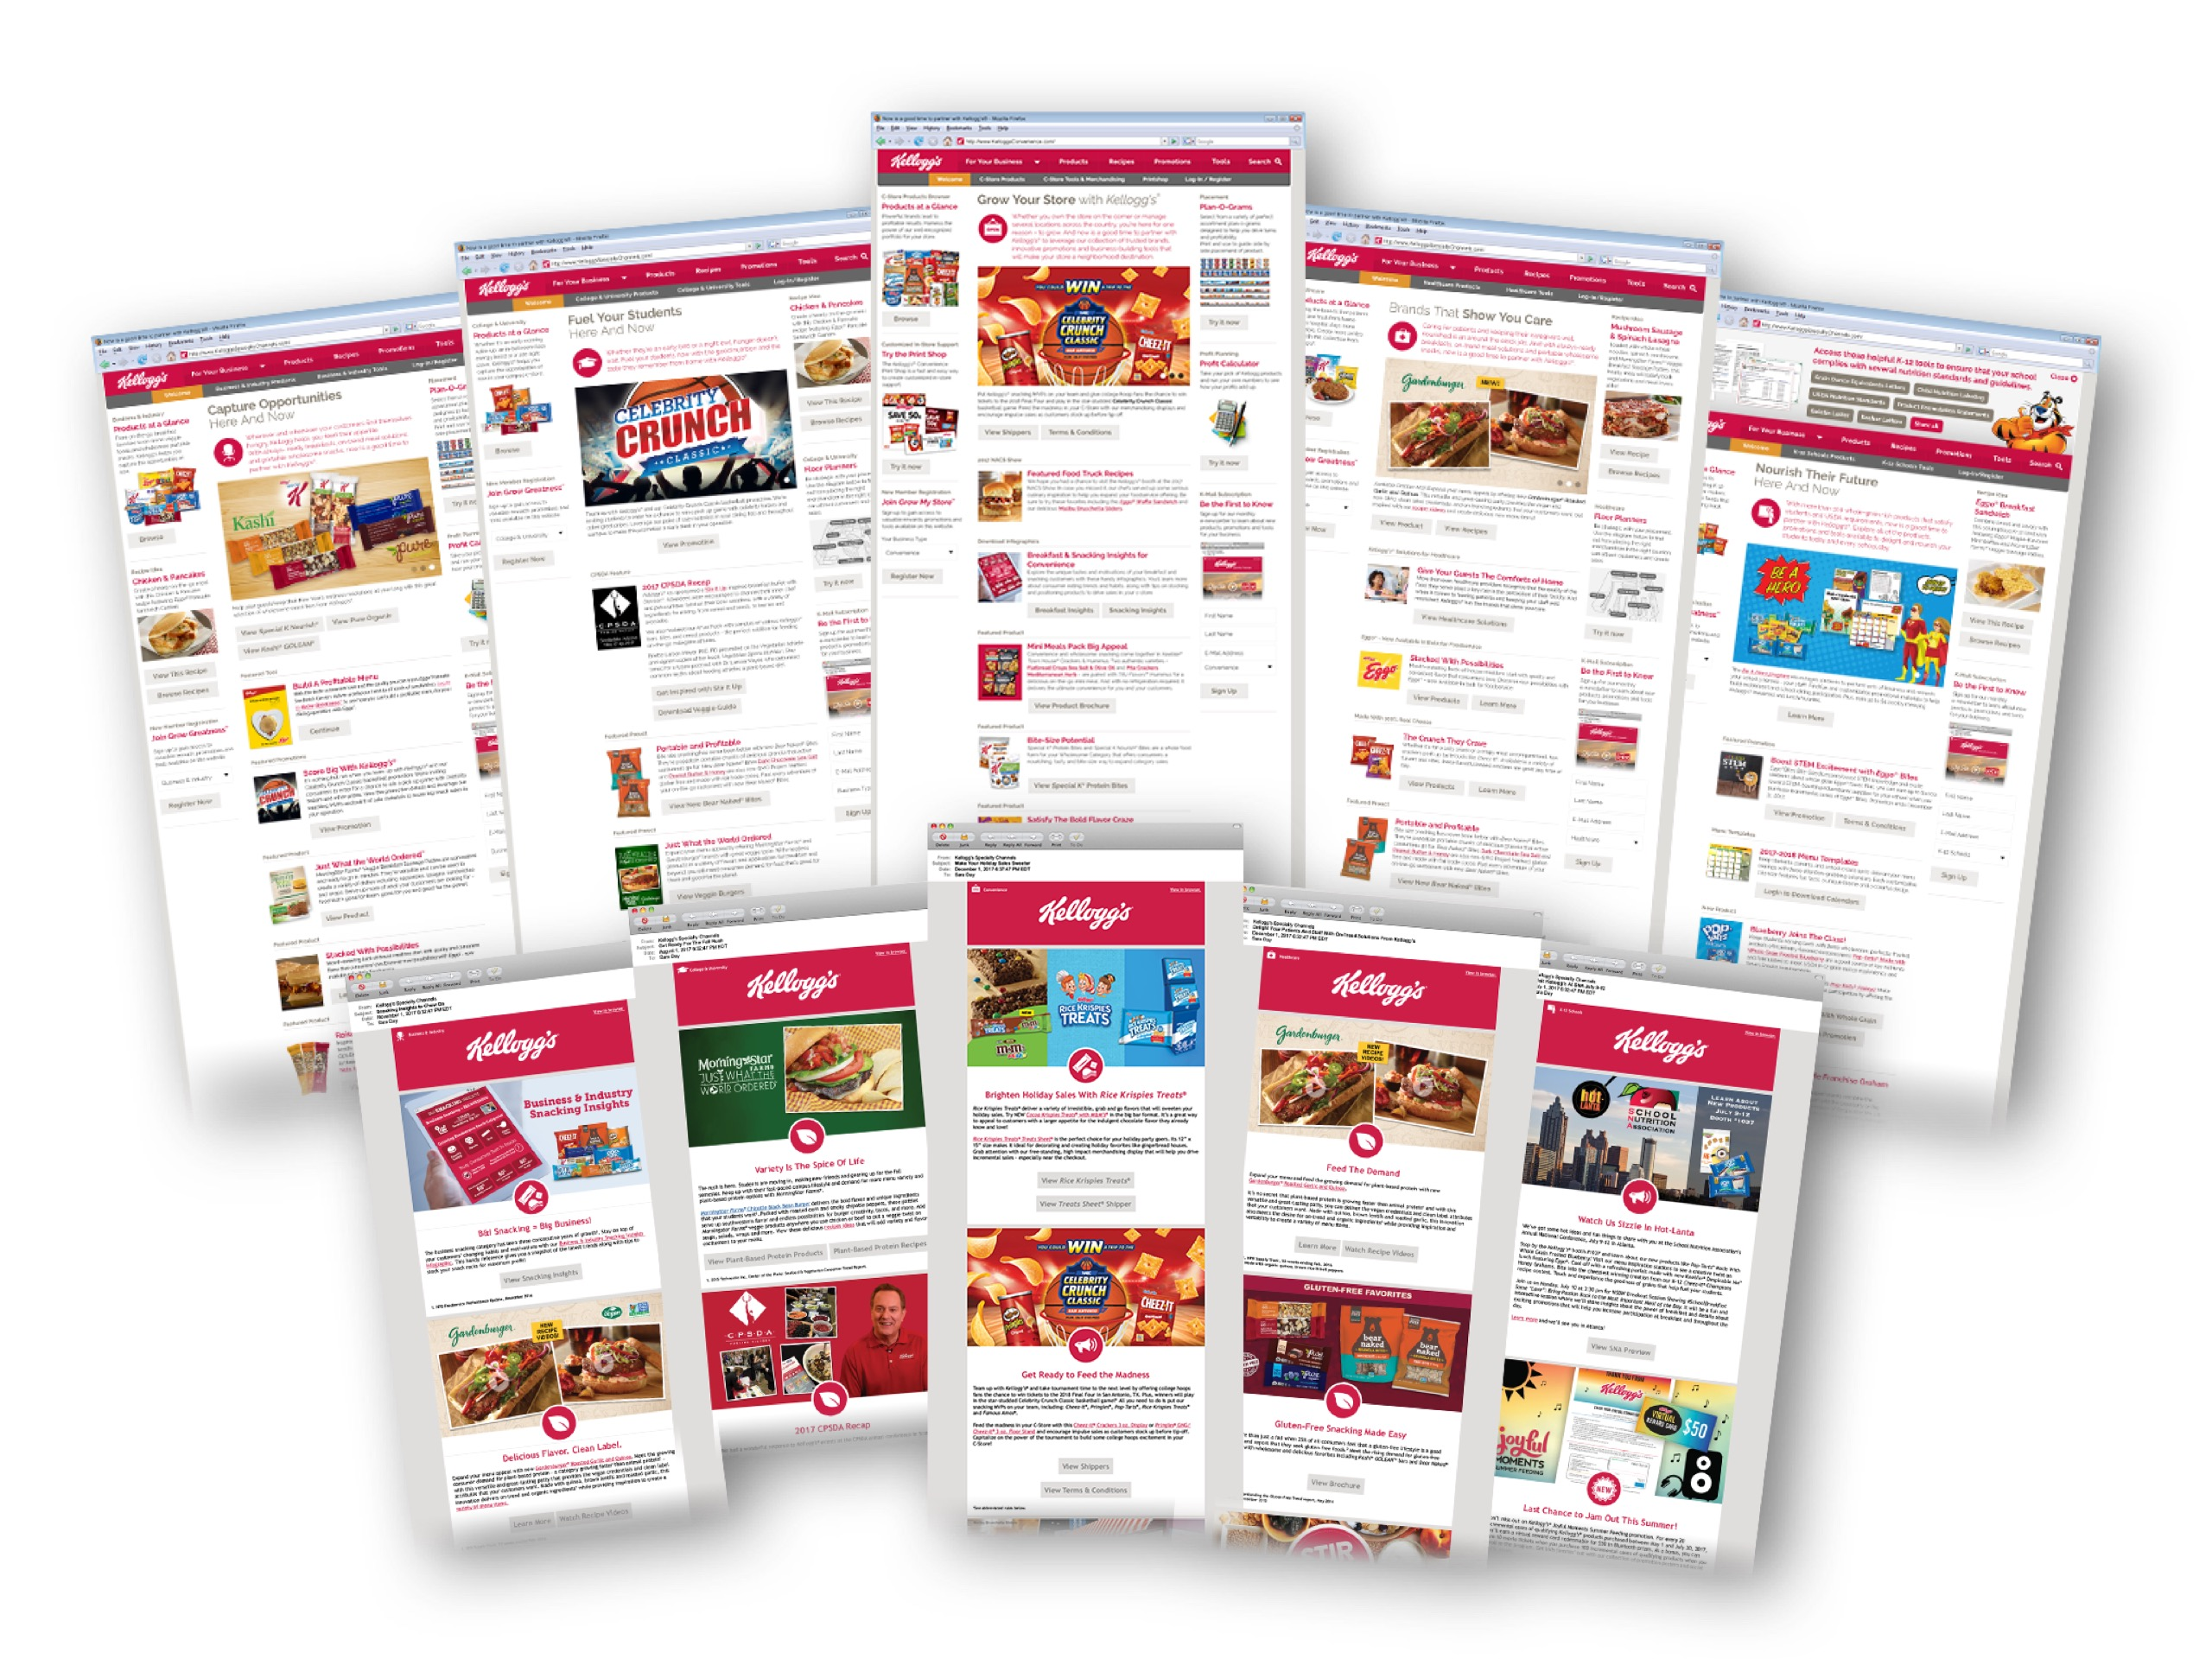 Kellogg's Specialty Channels K-Mail image